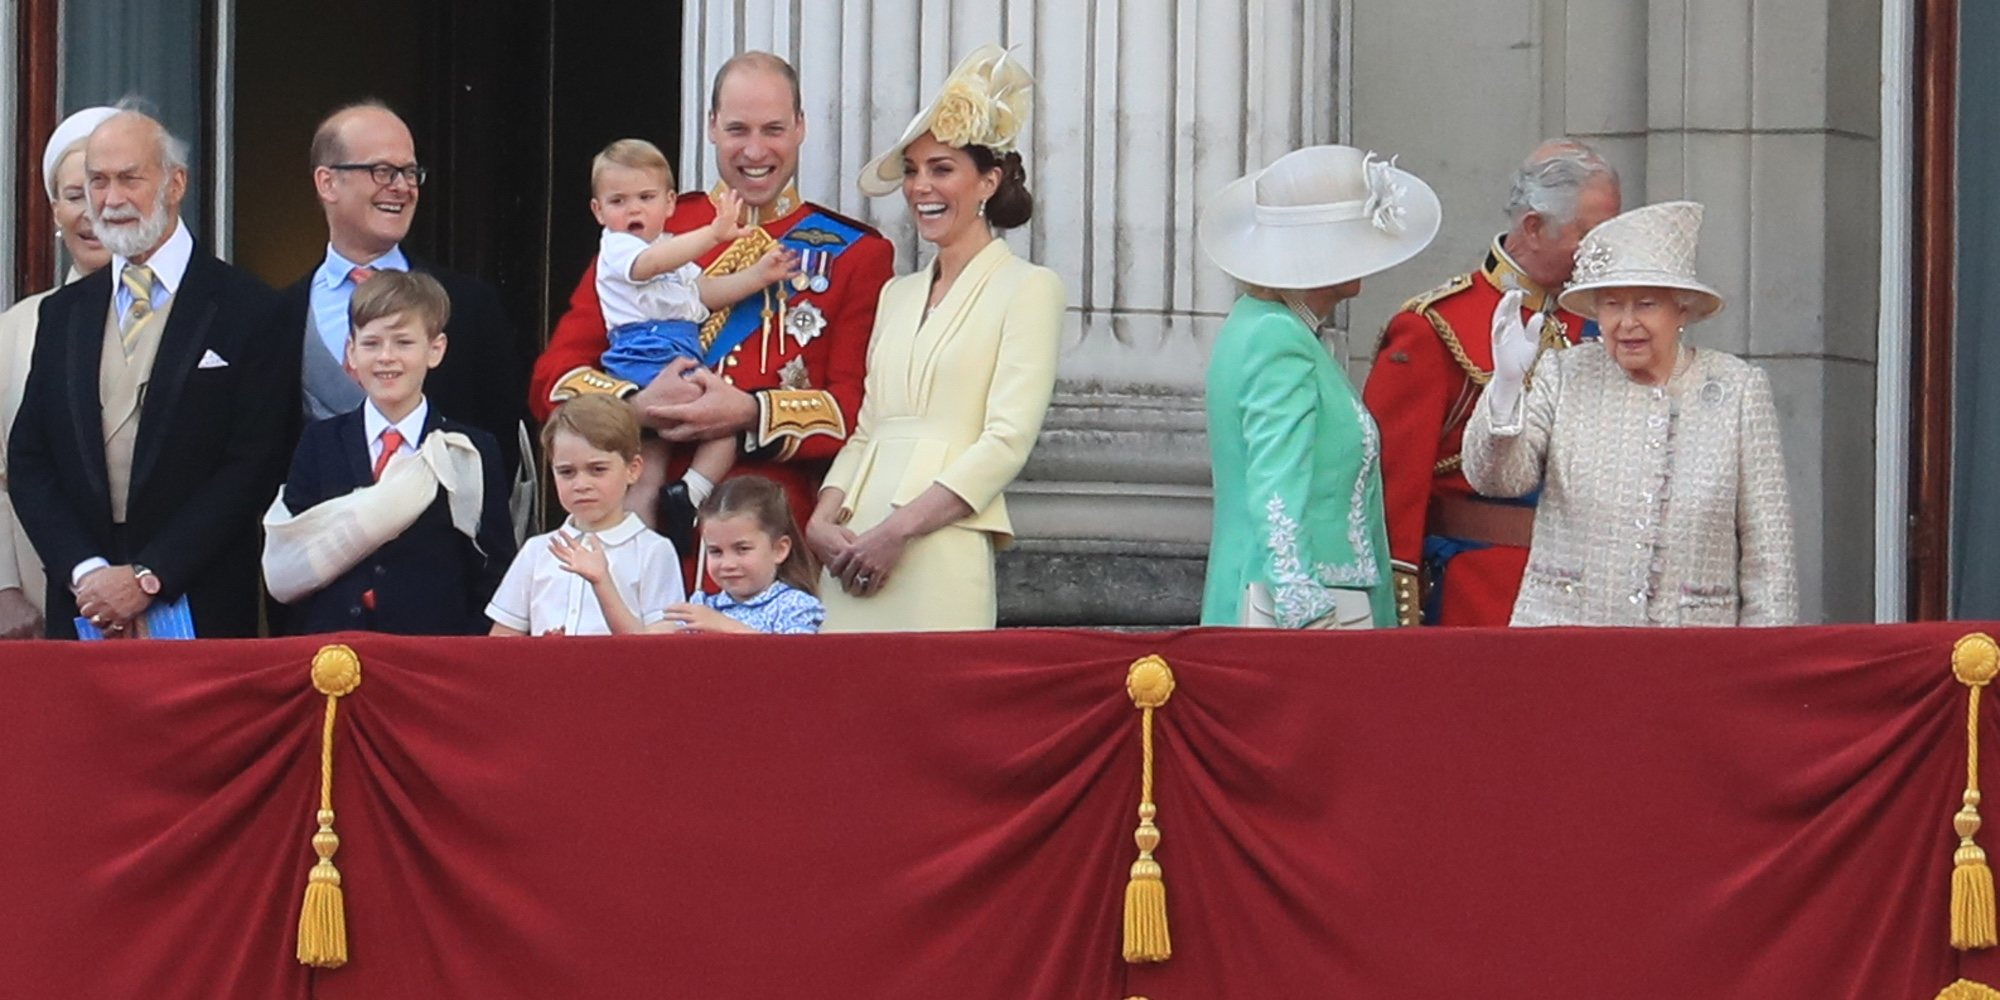 El Príncipe Luis de Cambridge, inquieto y expresivo en su debut en Trooping the Colour 2019